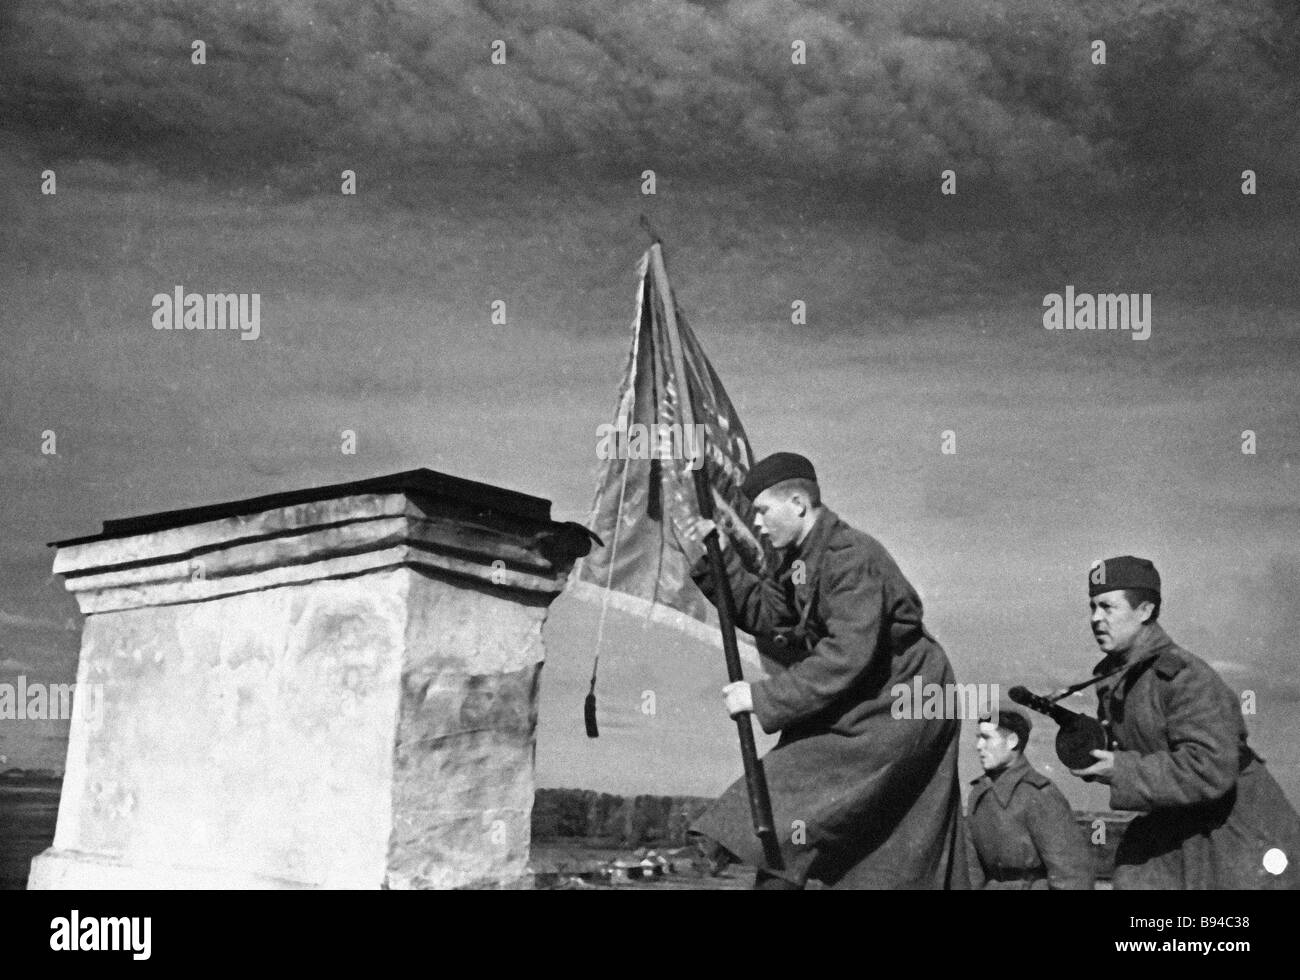 Soldiers of the 21st Nevel Guards Division hoist banner over Nevel city - Stock Image